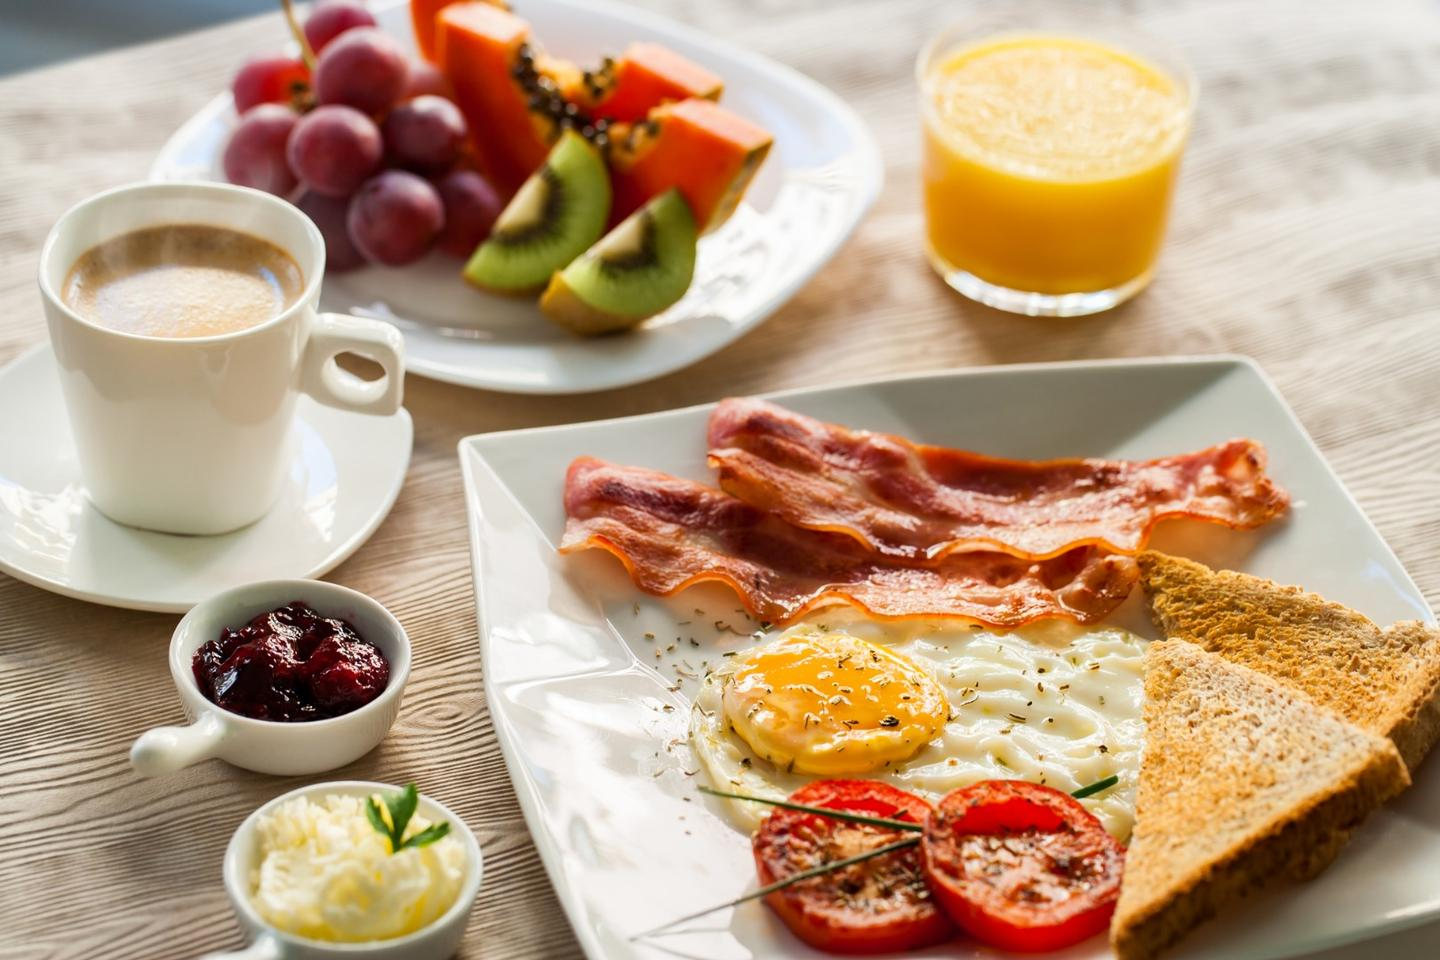 Collecting data from 13 different trials, a meta-analysis found skipping breakfast does not lead to weight gain or energy expenditure alterations